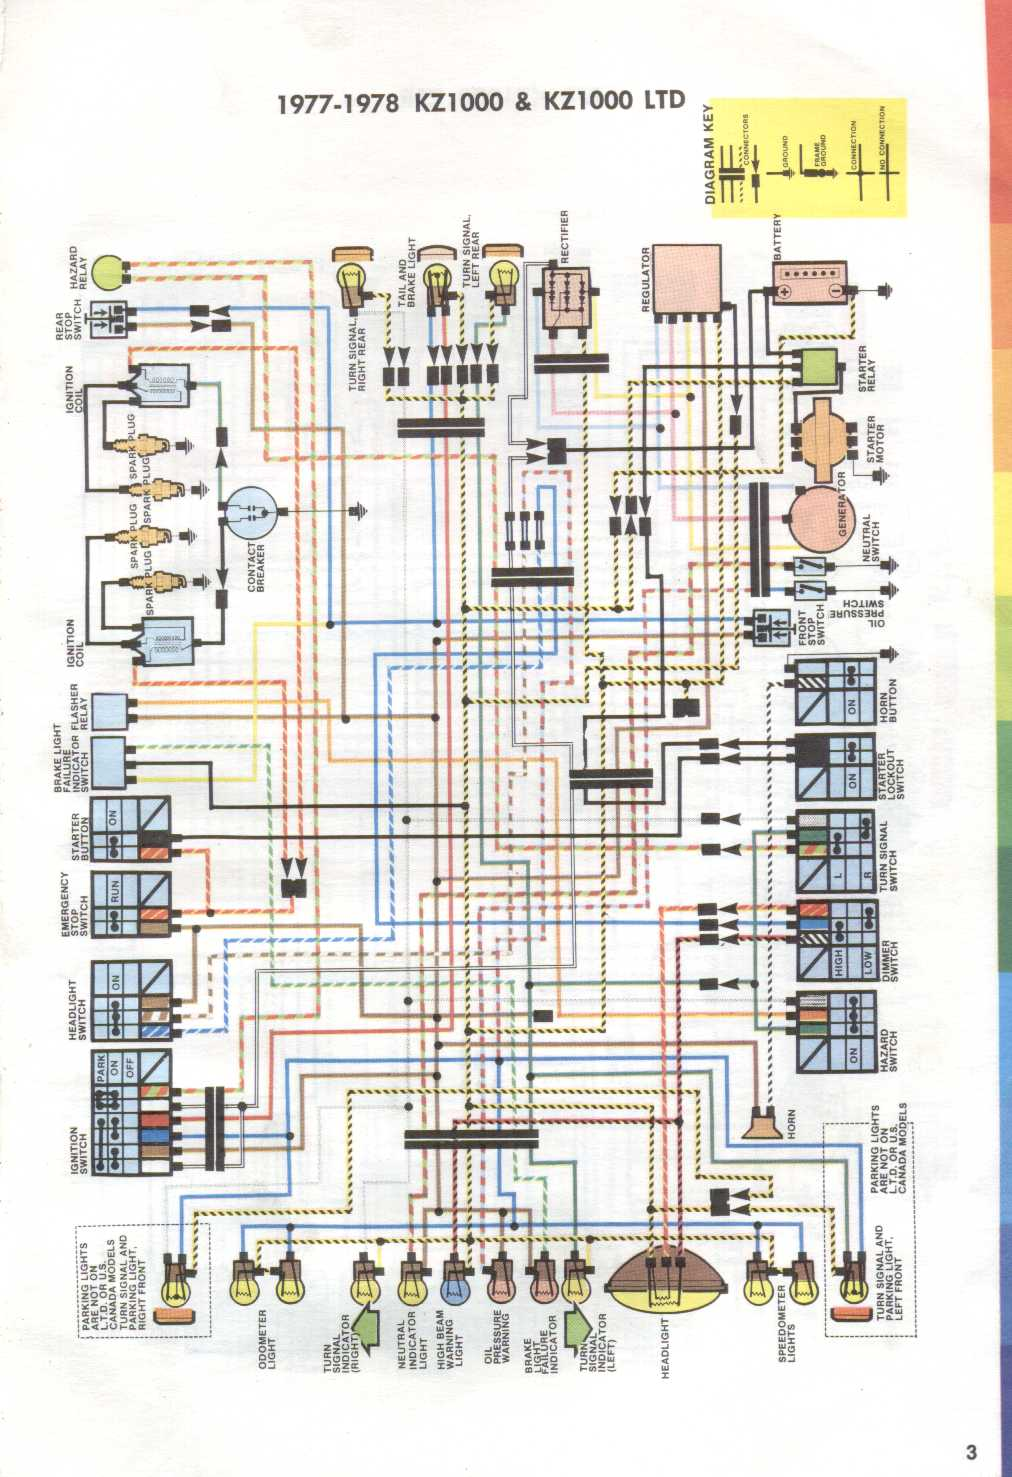 wiring diagram for 1977 1978 kawasaki kz1000 and kz1000ltd evan rh cycles evanfell com